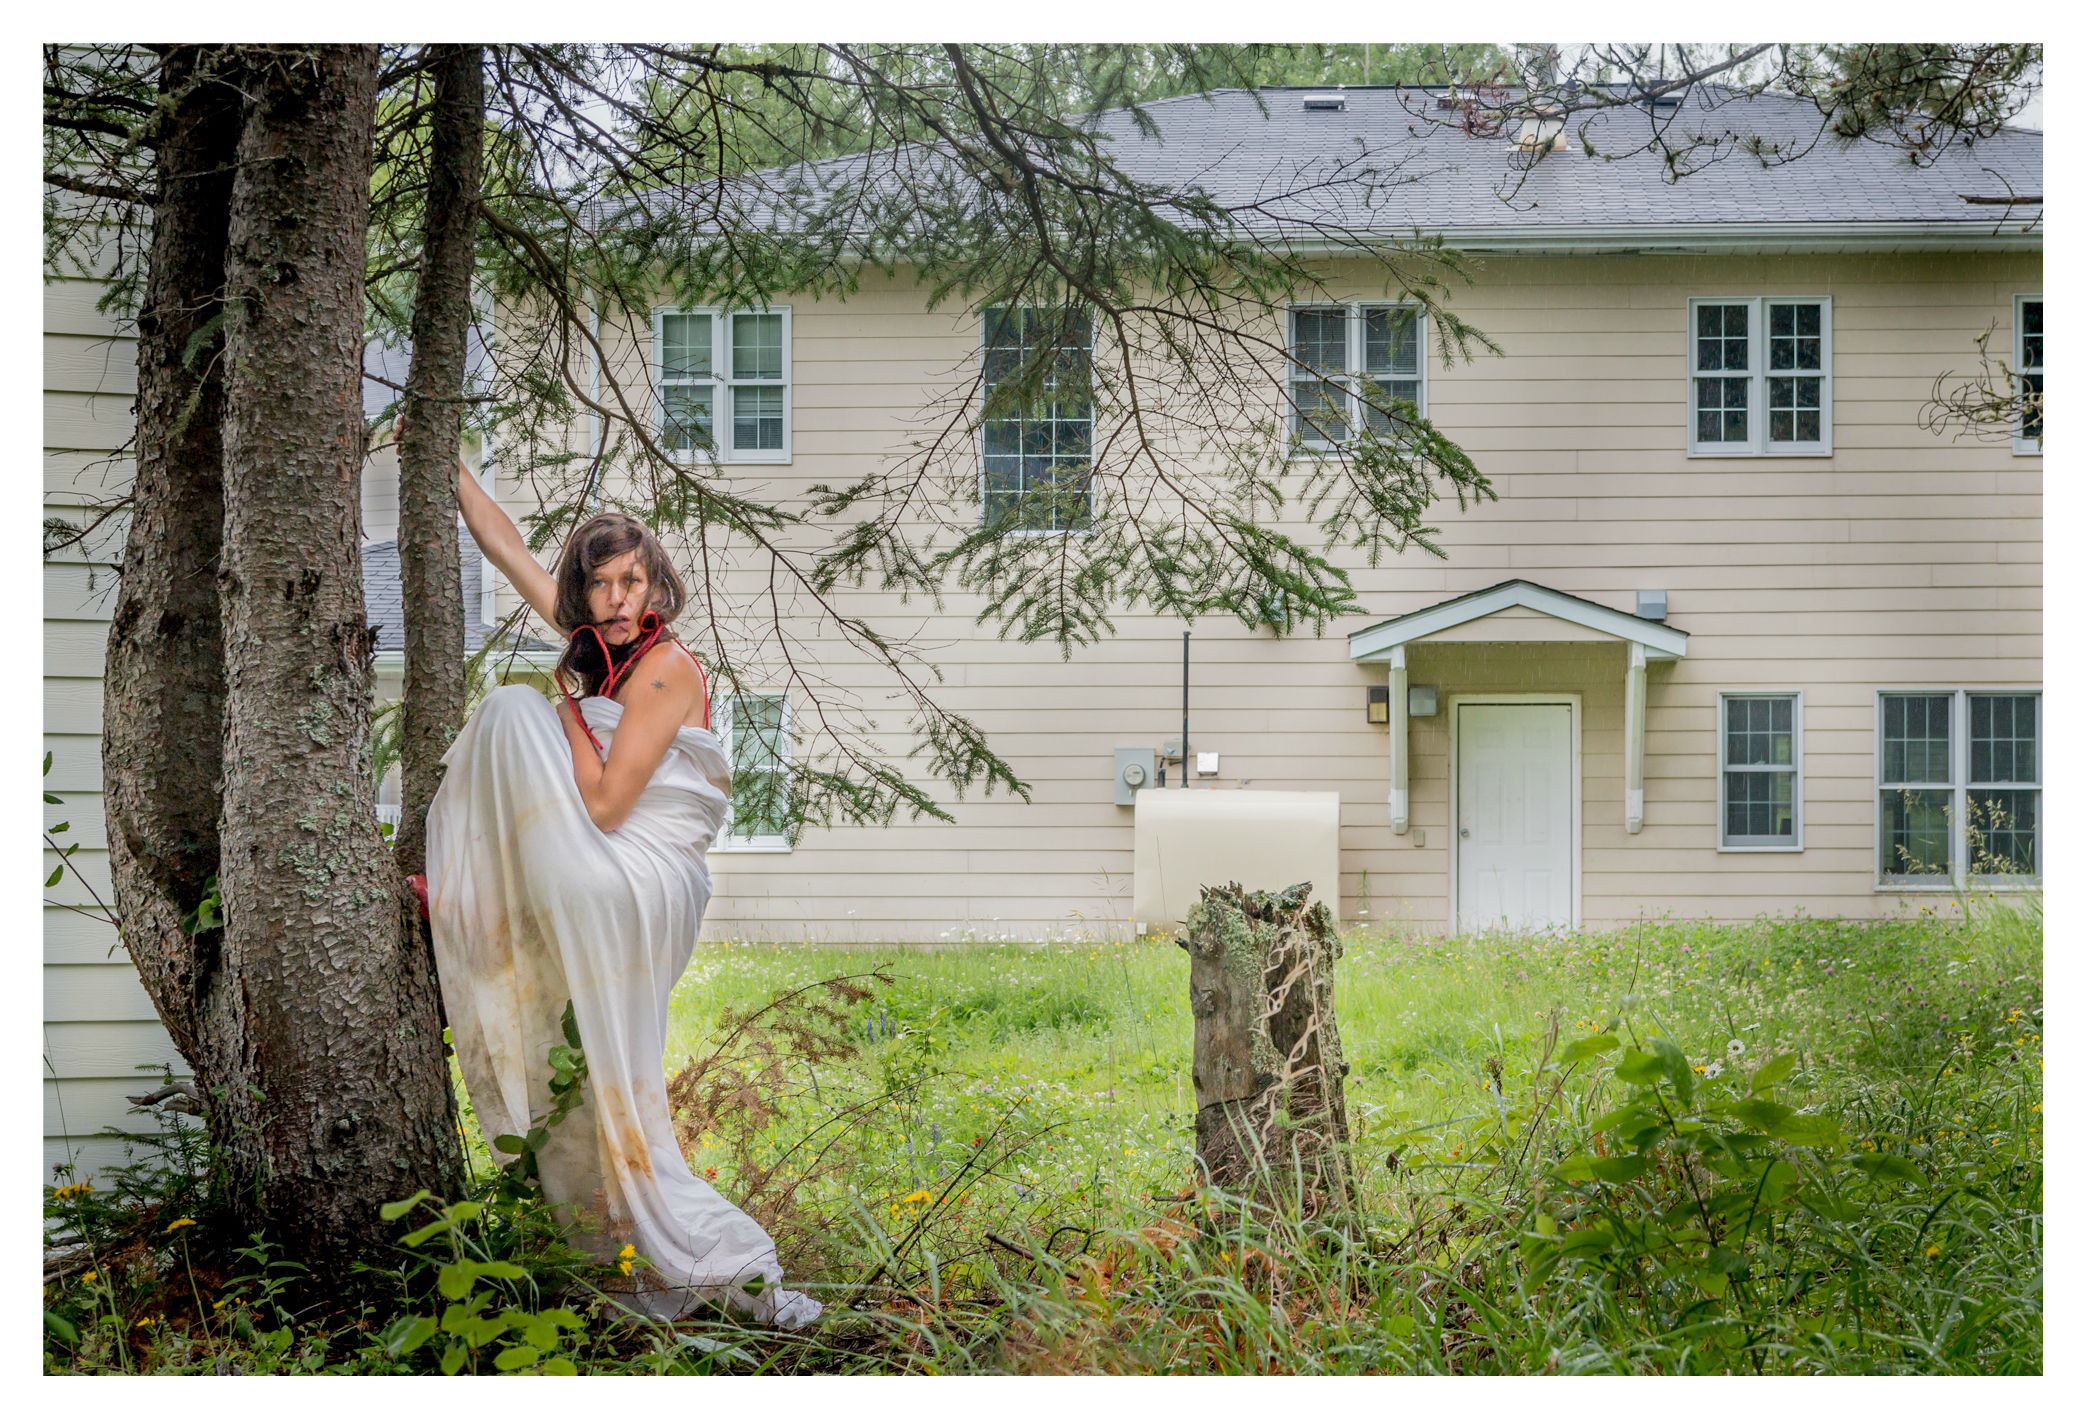 The photo is on the grounds of the former Pelican Lake Indian Residential School. Artist Lara Kramer is standing at the base of a tall conifer tree. Kramer is looking into the distance to the right with a frightened expression in her eyes. She is wrapped in a long white sheet at her chest that drapes below her feet and which has dirt and red stains at the hem. She is grabbing the tree with her right hand, extending her arm above her head. Her left arm is bent with her elbow resting in the crease of her left thigh as she prepares to mount the tree with her left leg bent and left foot in the crease of the tree which she can reach while her right food is on the ground. She is standing amidst thigh high tall plants. There is a red band or string wrapped around her left foot that follows up to her left upper arm, lower jaw, left shoulder, and upper back. There is a white two storey building with horizontal siding immediately left and behind the tree, and another two storey yellow building with horizontal siding in the near distance. There is a tree stump to the right of the artist.